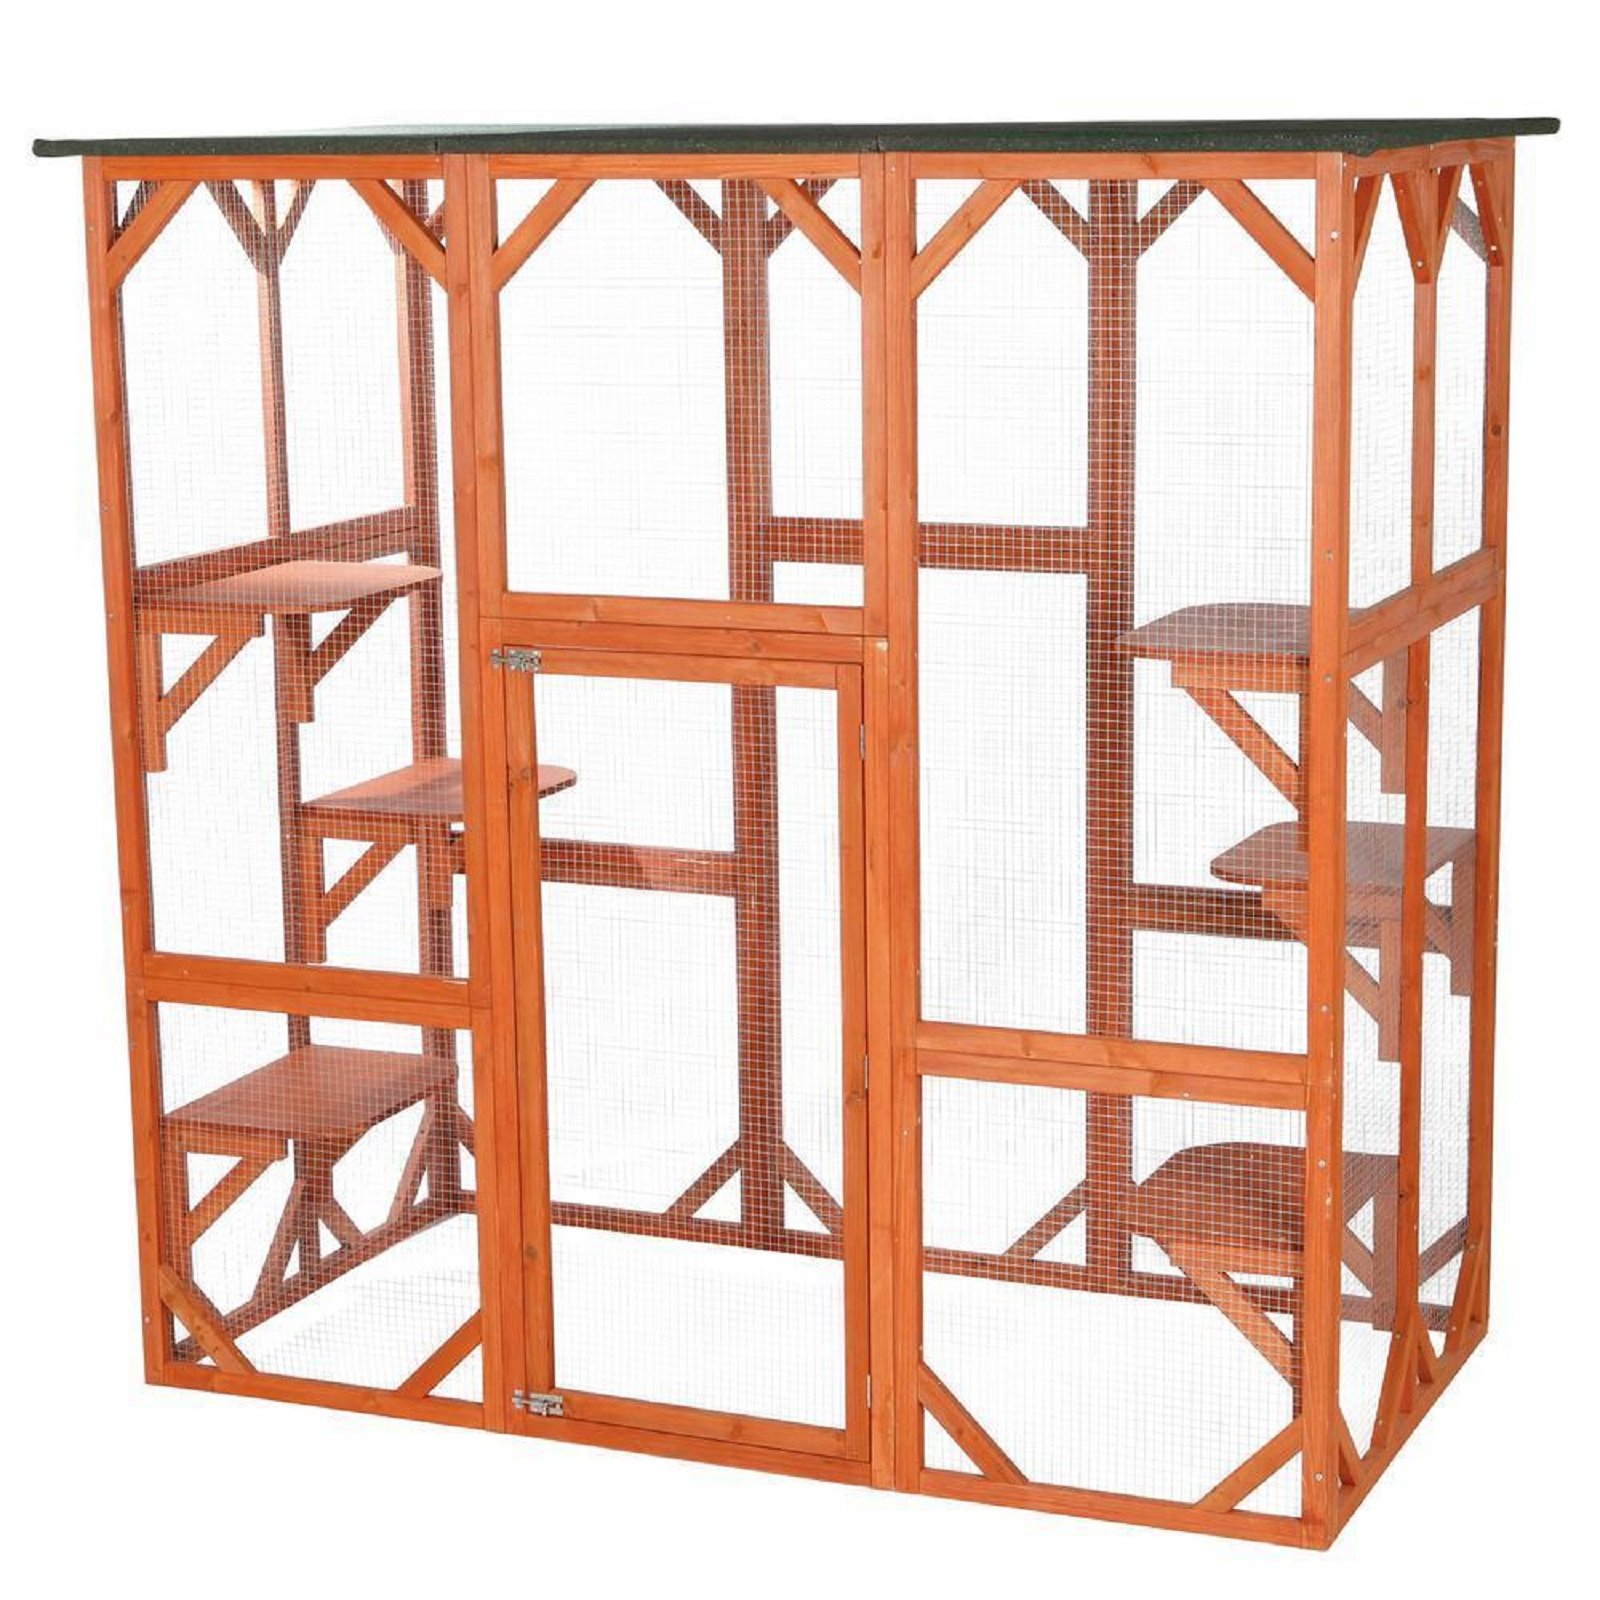 Hot Sale! Wooden Outdoor Cat House Small Medium Durable Pets Dogs Kennels Home Cottages